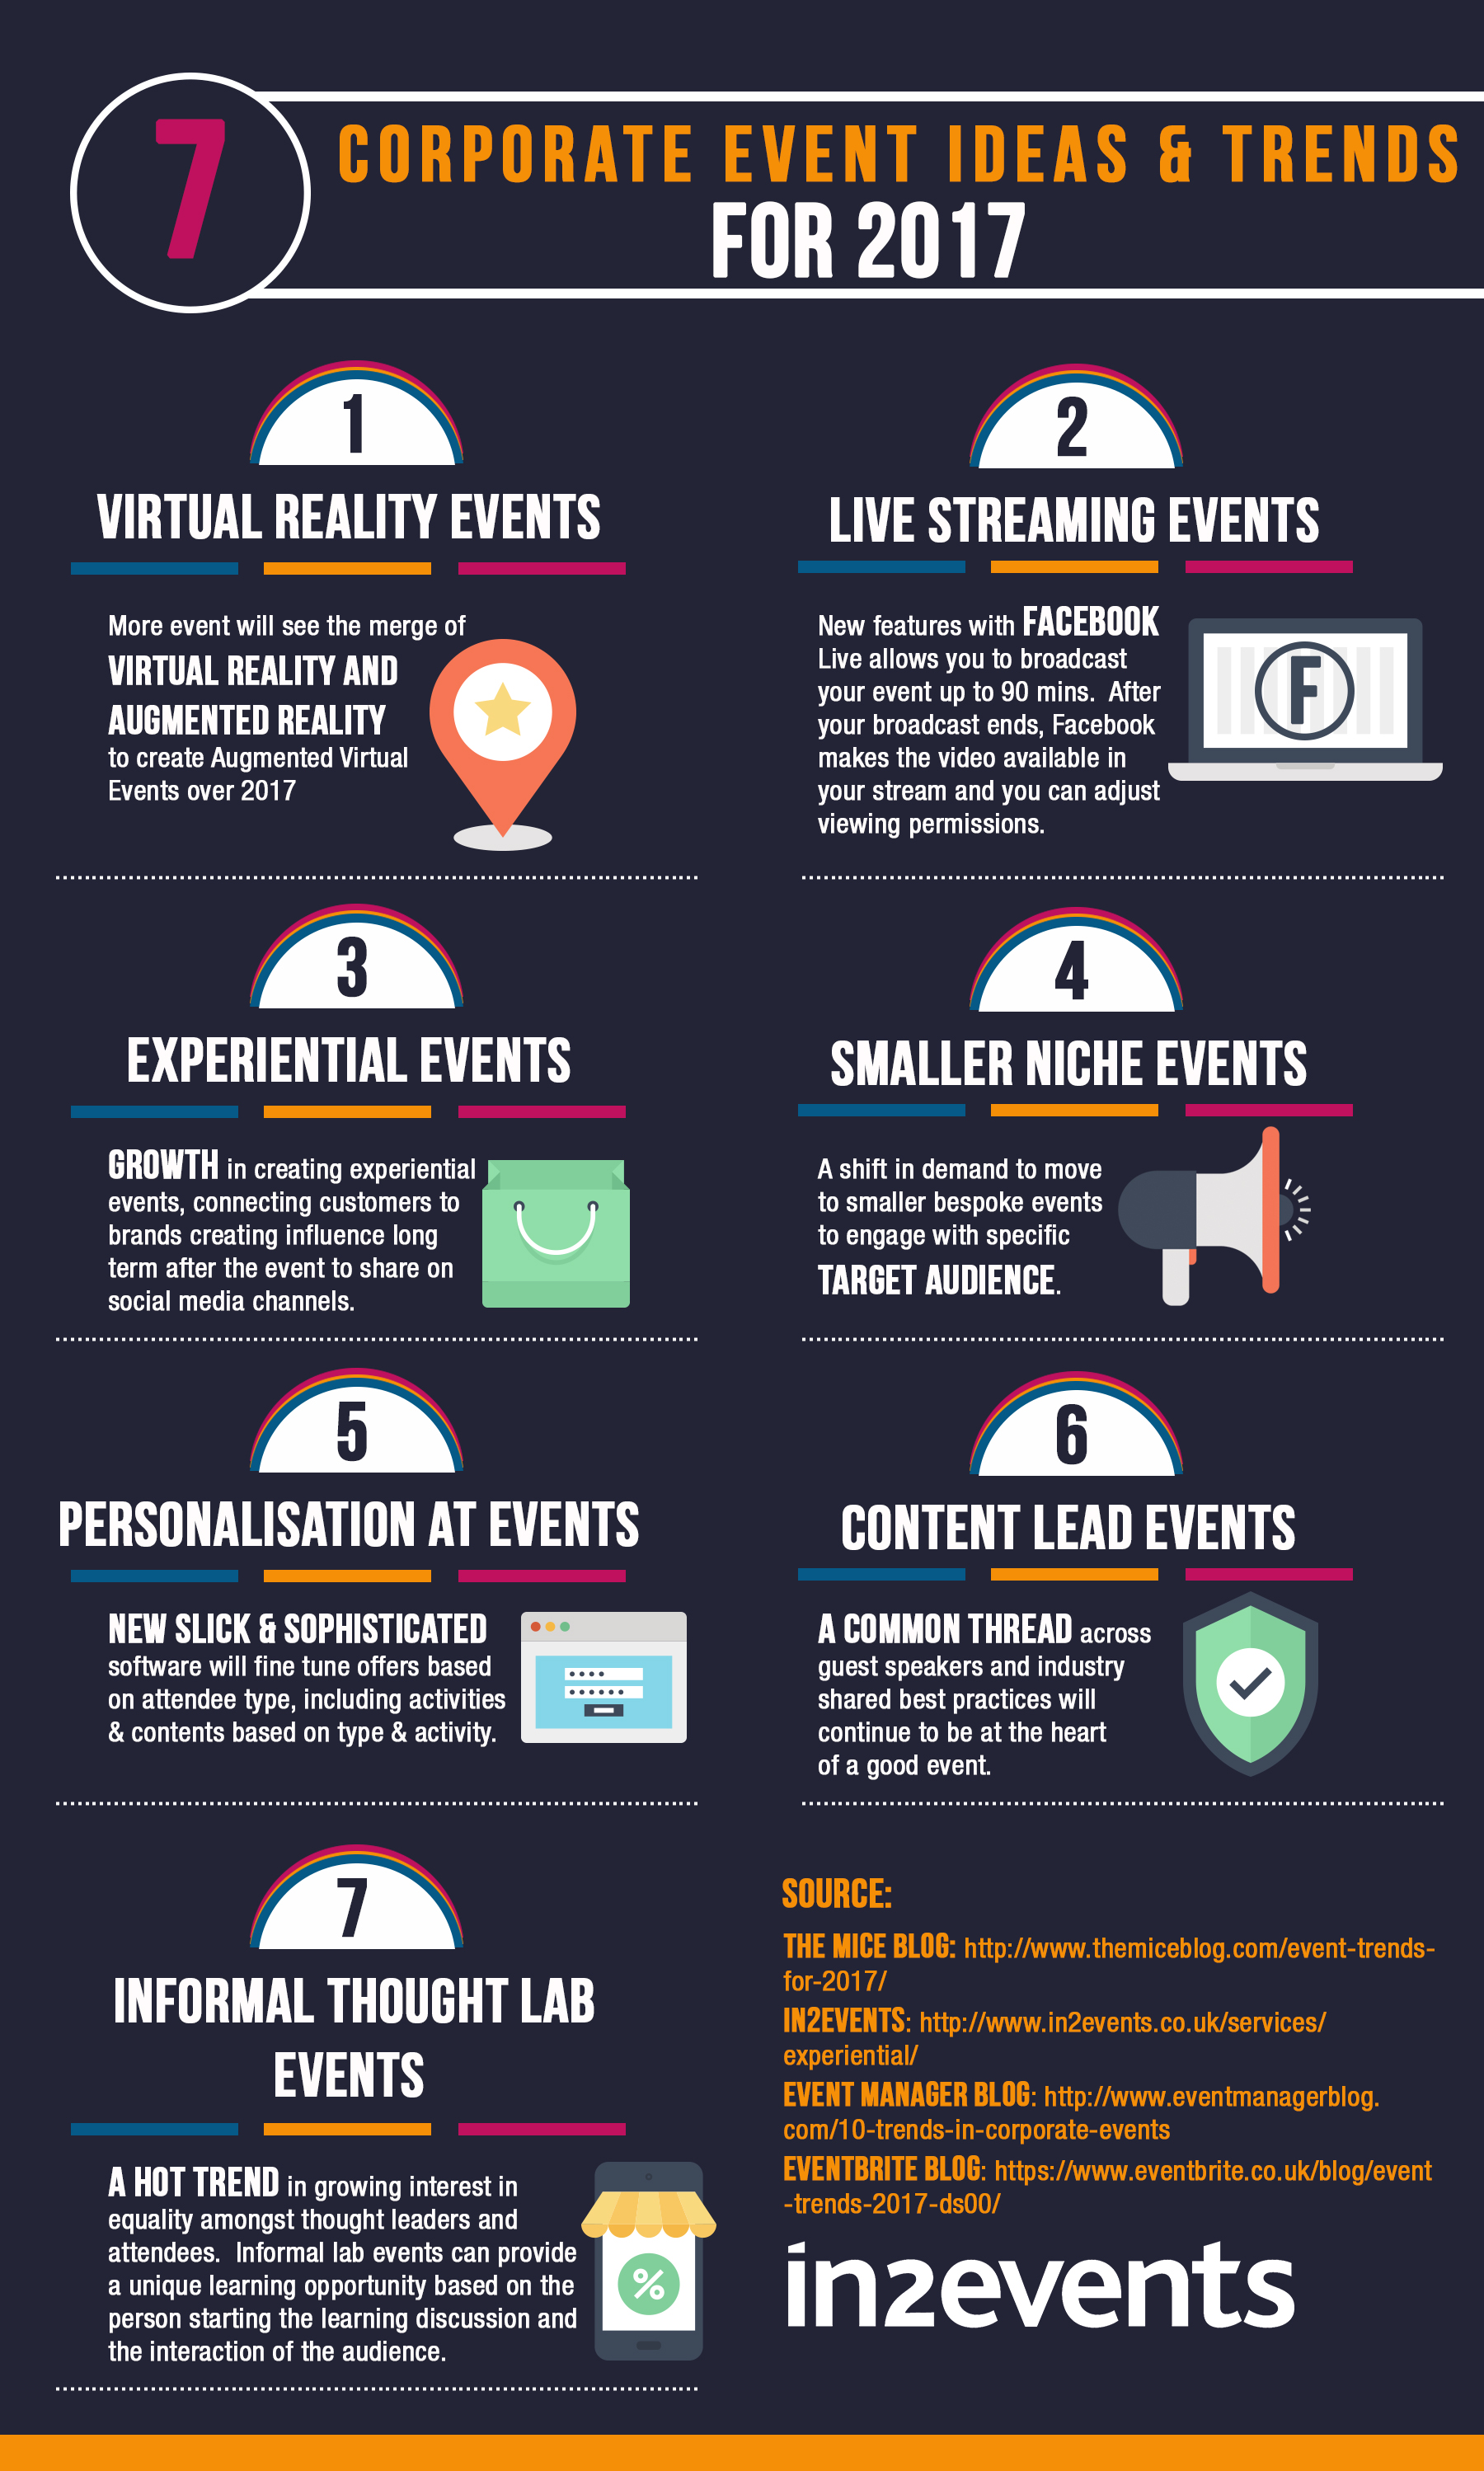 7 Corporate event ideas & trends for 2017